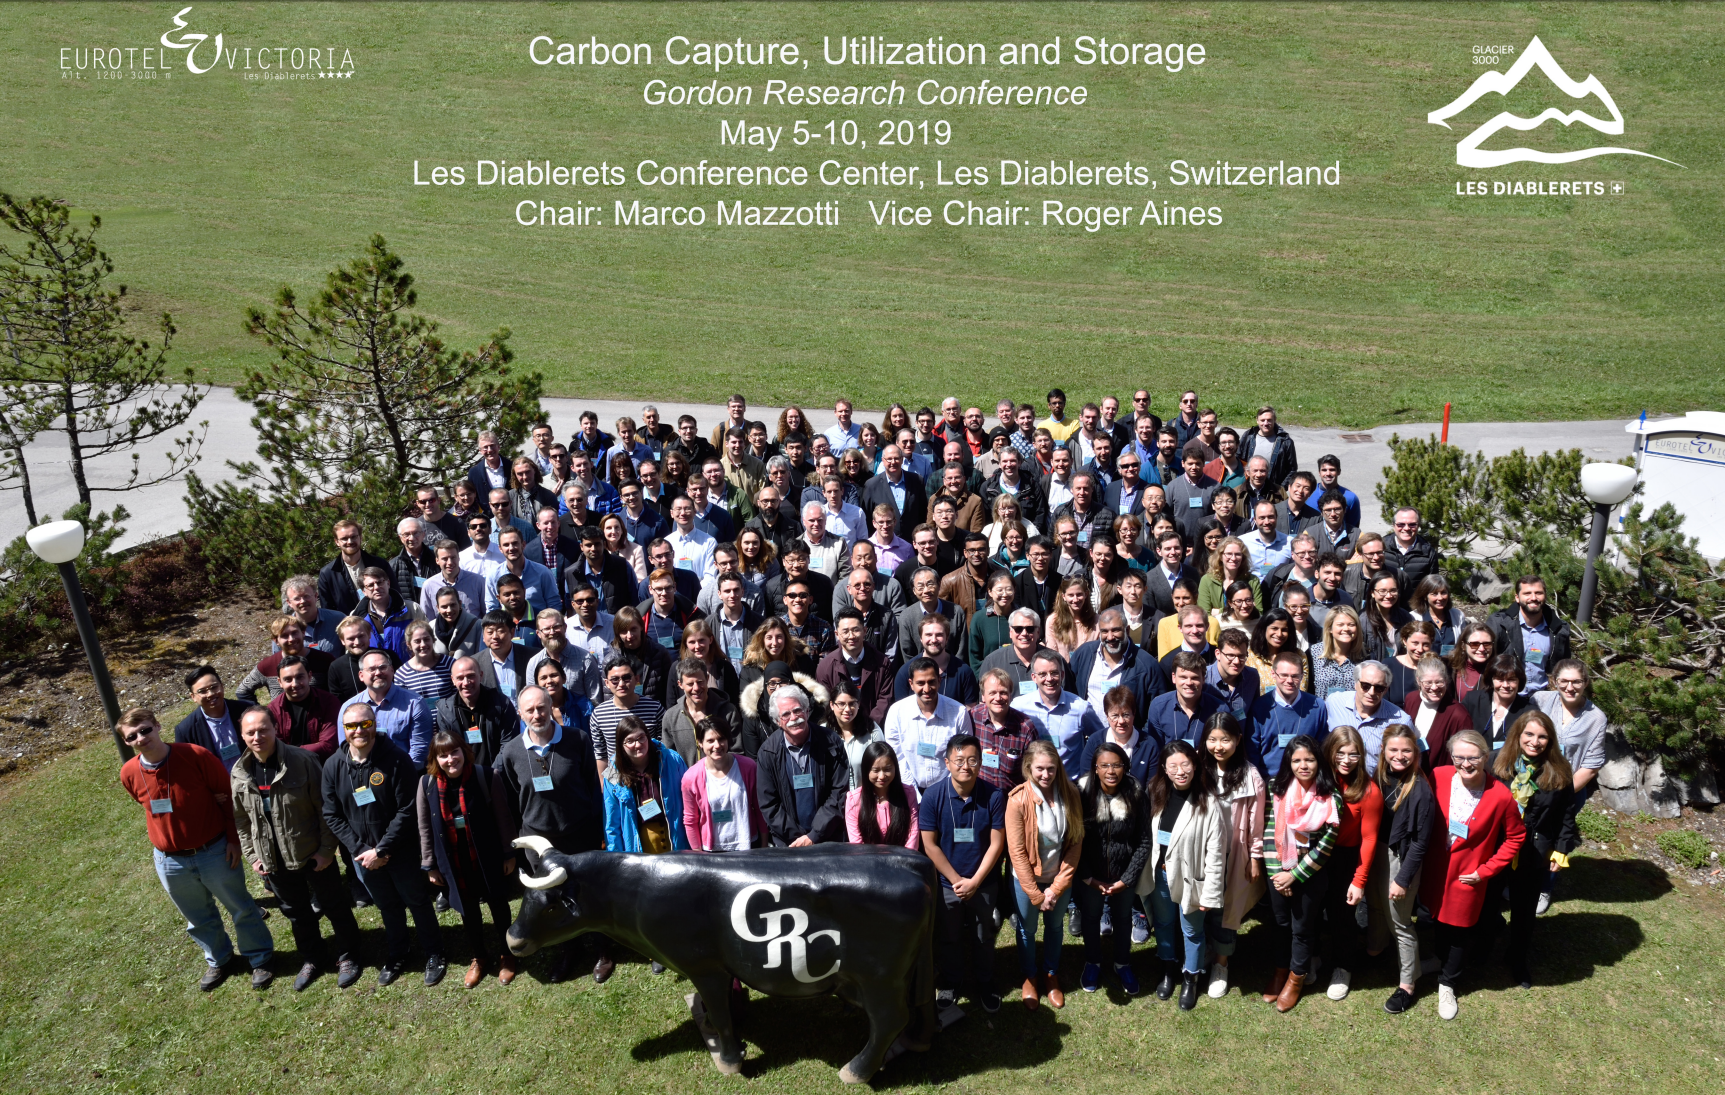 Approximately 200 of the conference attendees stand in a grassy field in Switzerland